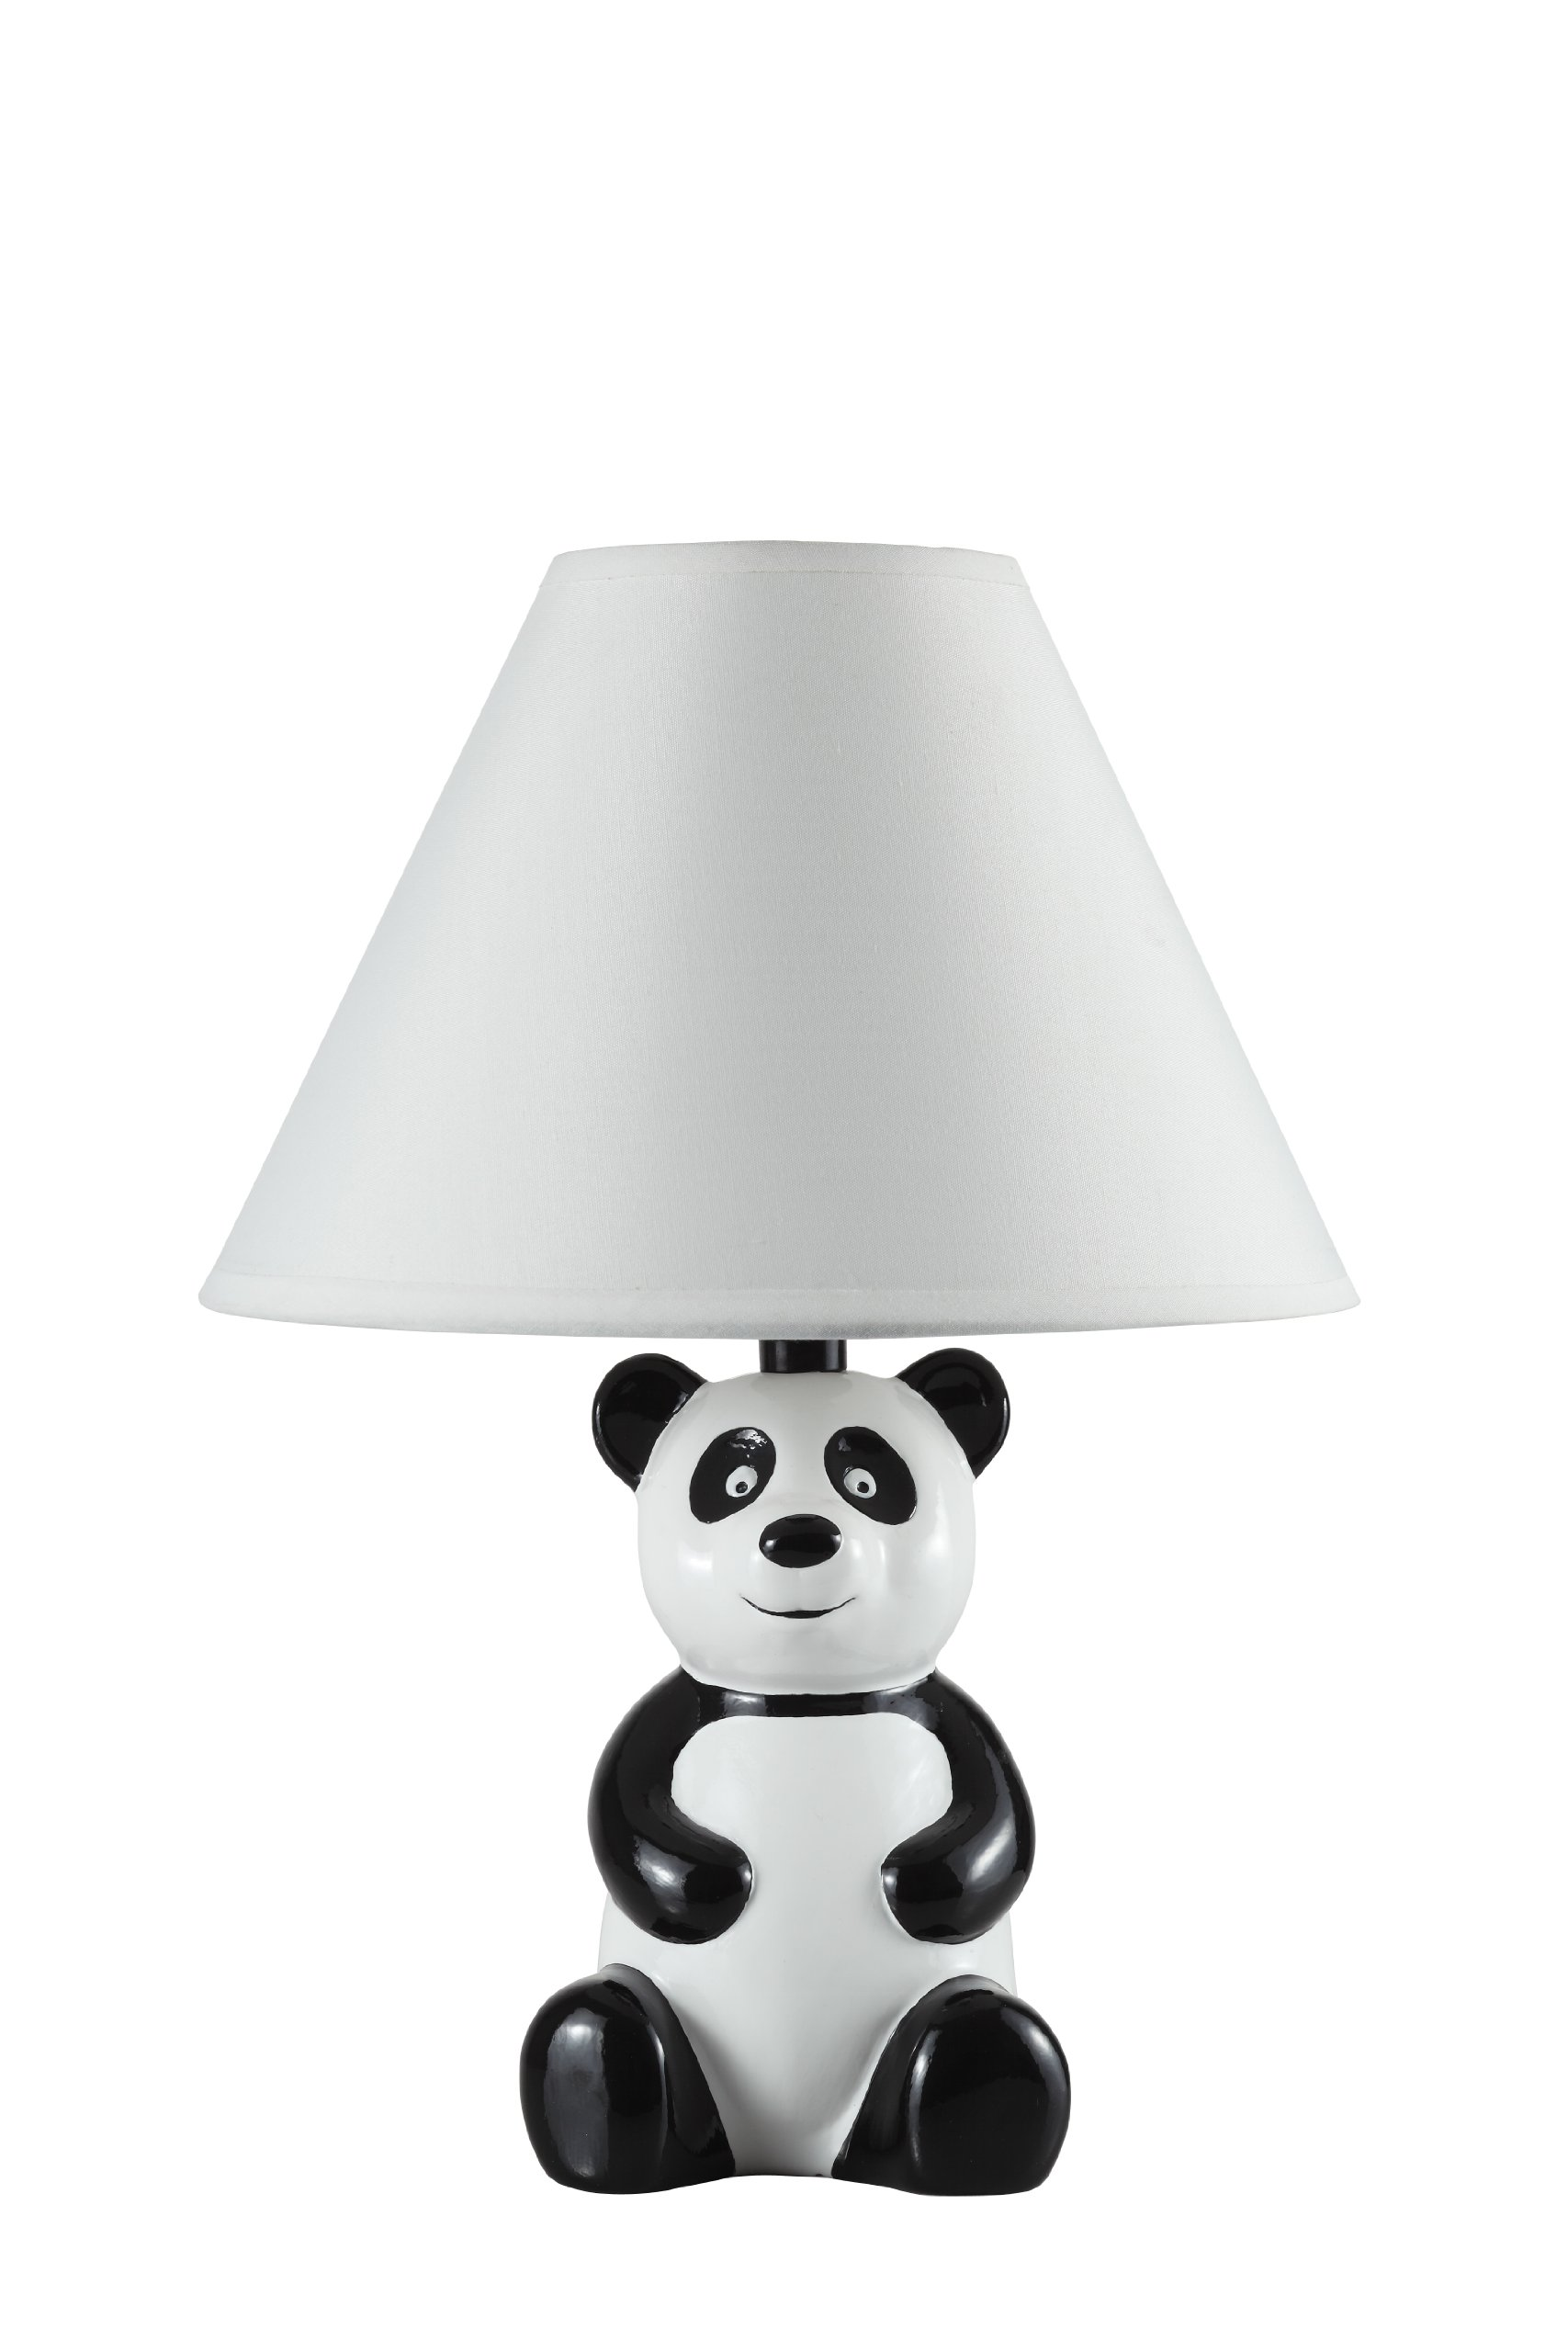 14'' White and Black Novelty Panda Table/ Desk Lamp with White Shade - 628WH